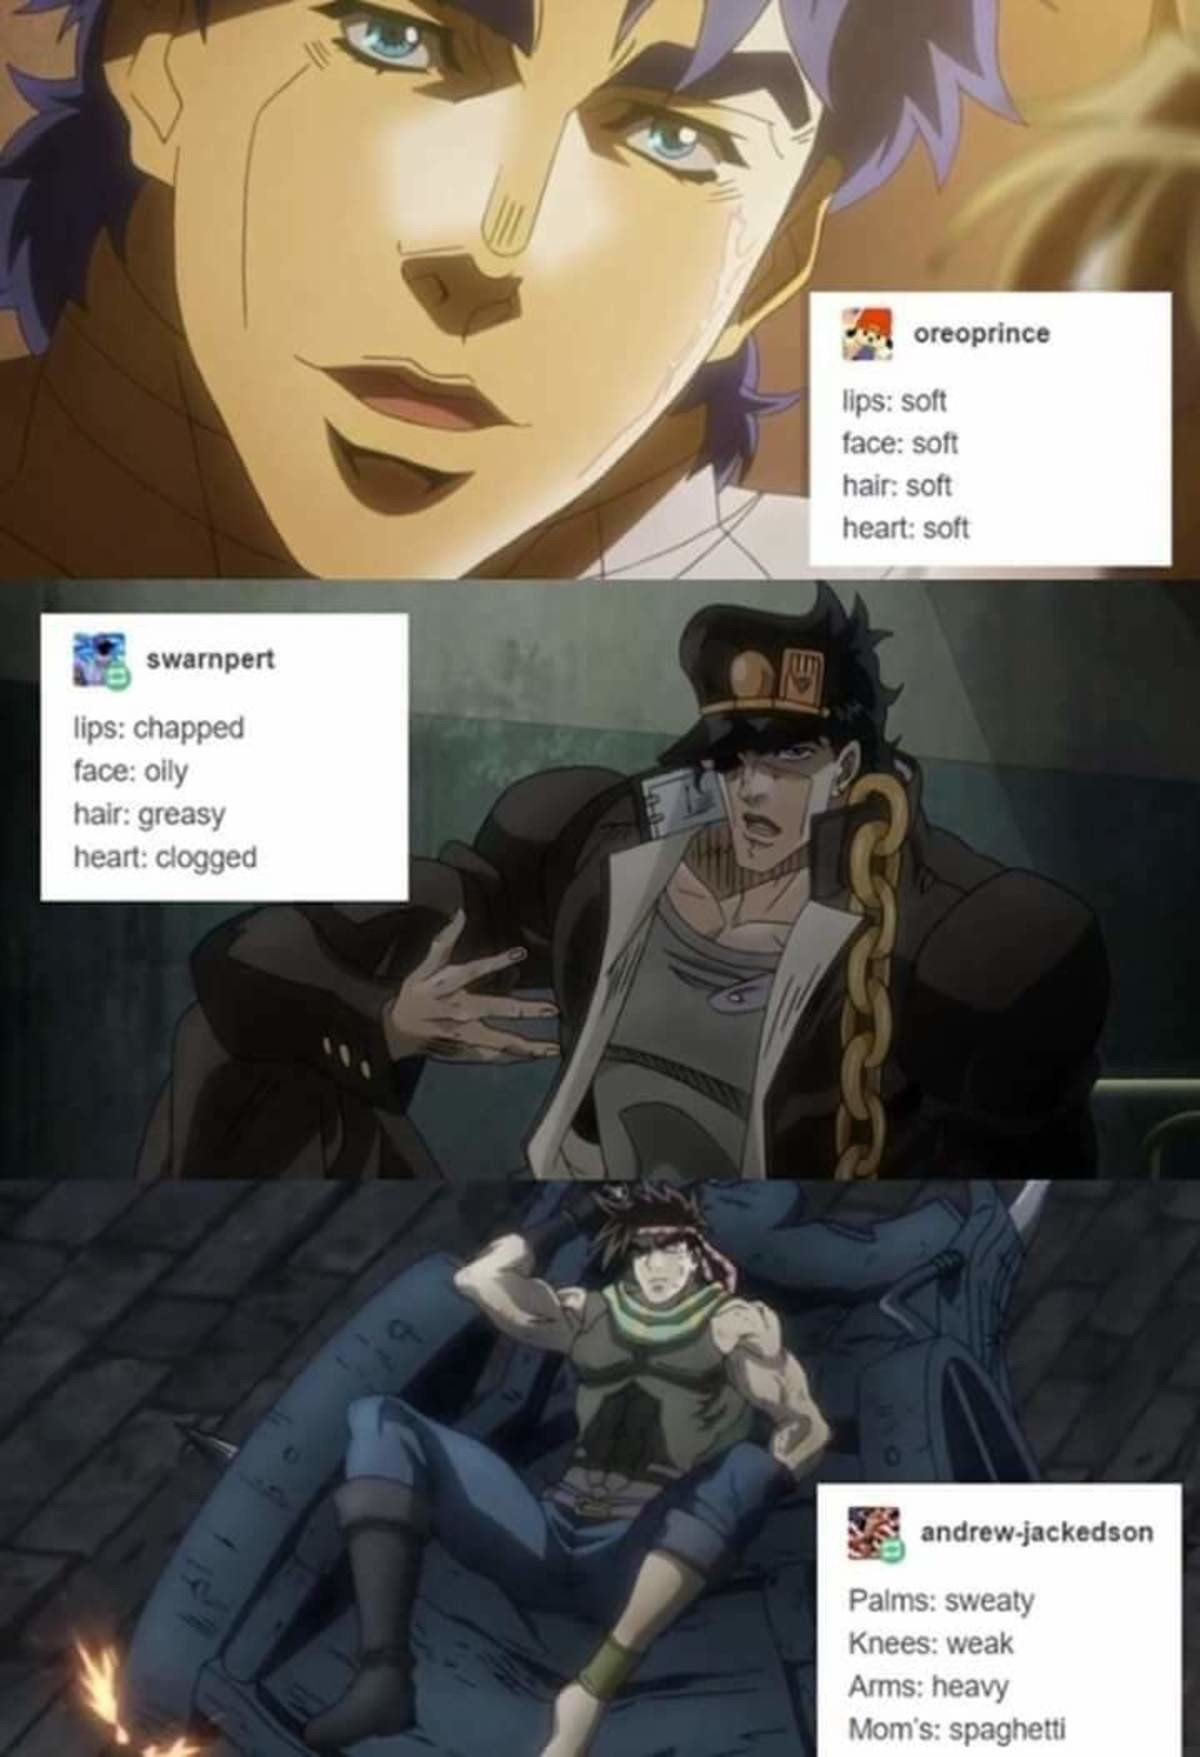 Some JoJo I got stocked on my phone. Computer died, and with it my stockpile of JoJo memes; enjoy what I managed to save. swampy! ups: chapped face new gleam ne